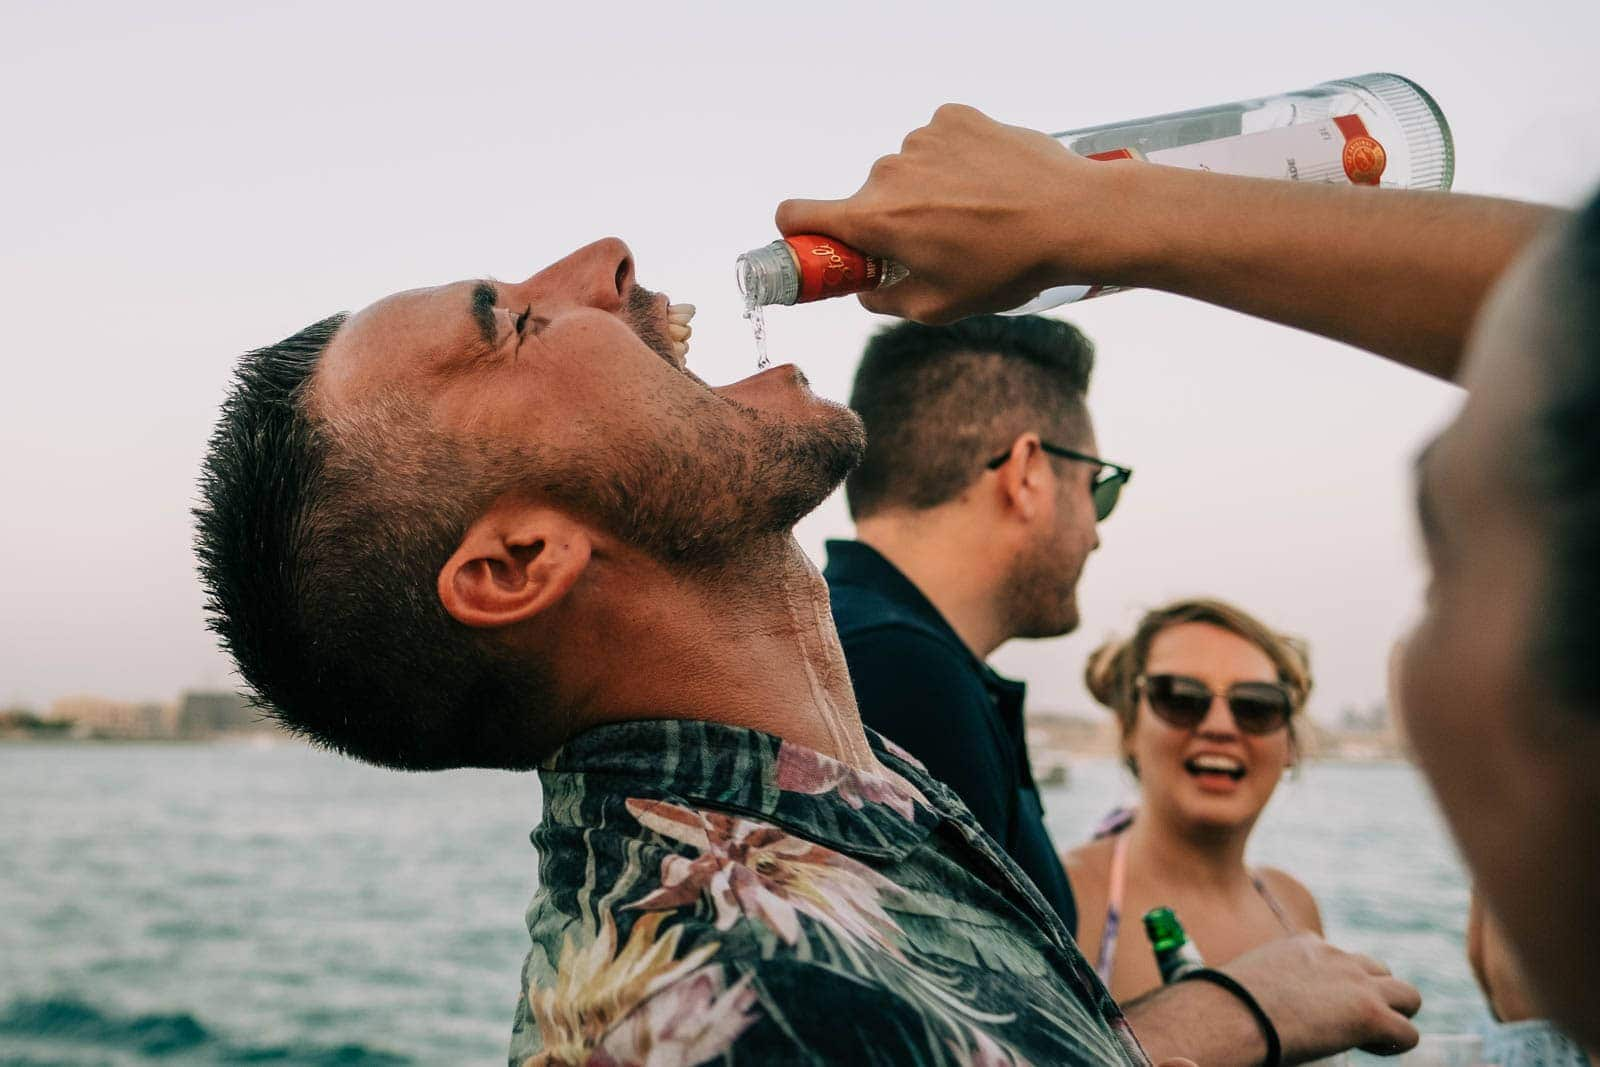 Groomsmen has Vodka poured into his mouth